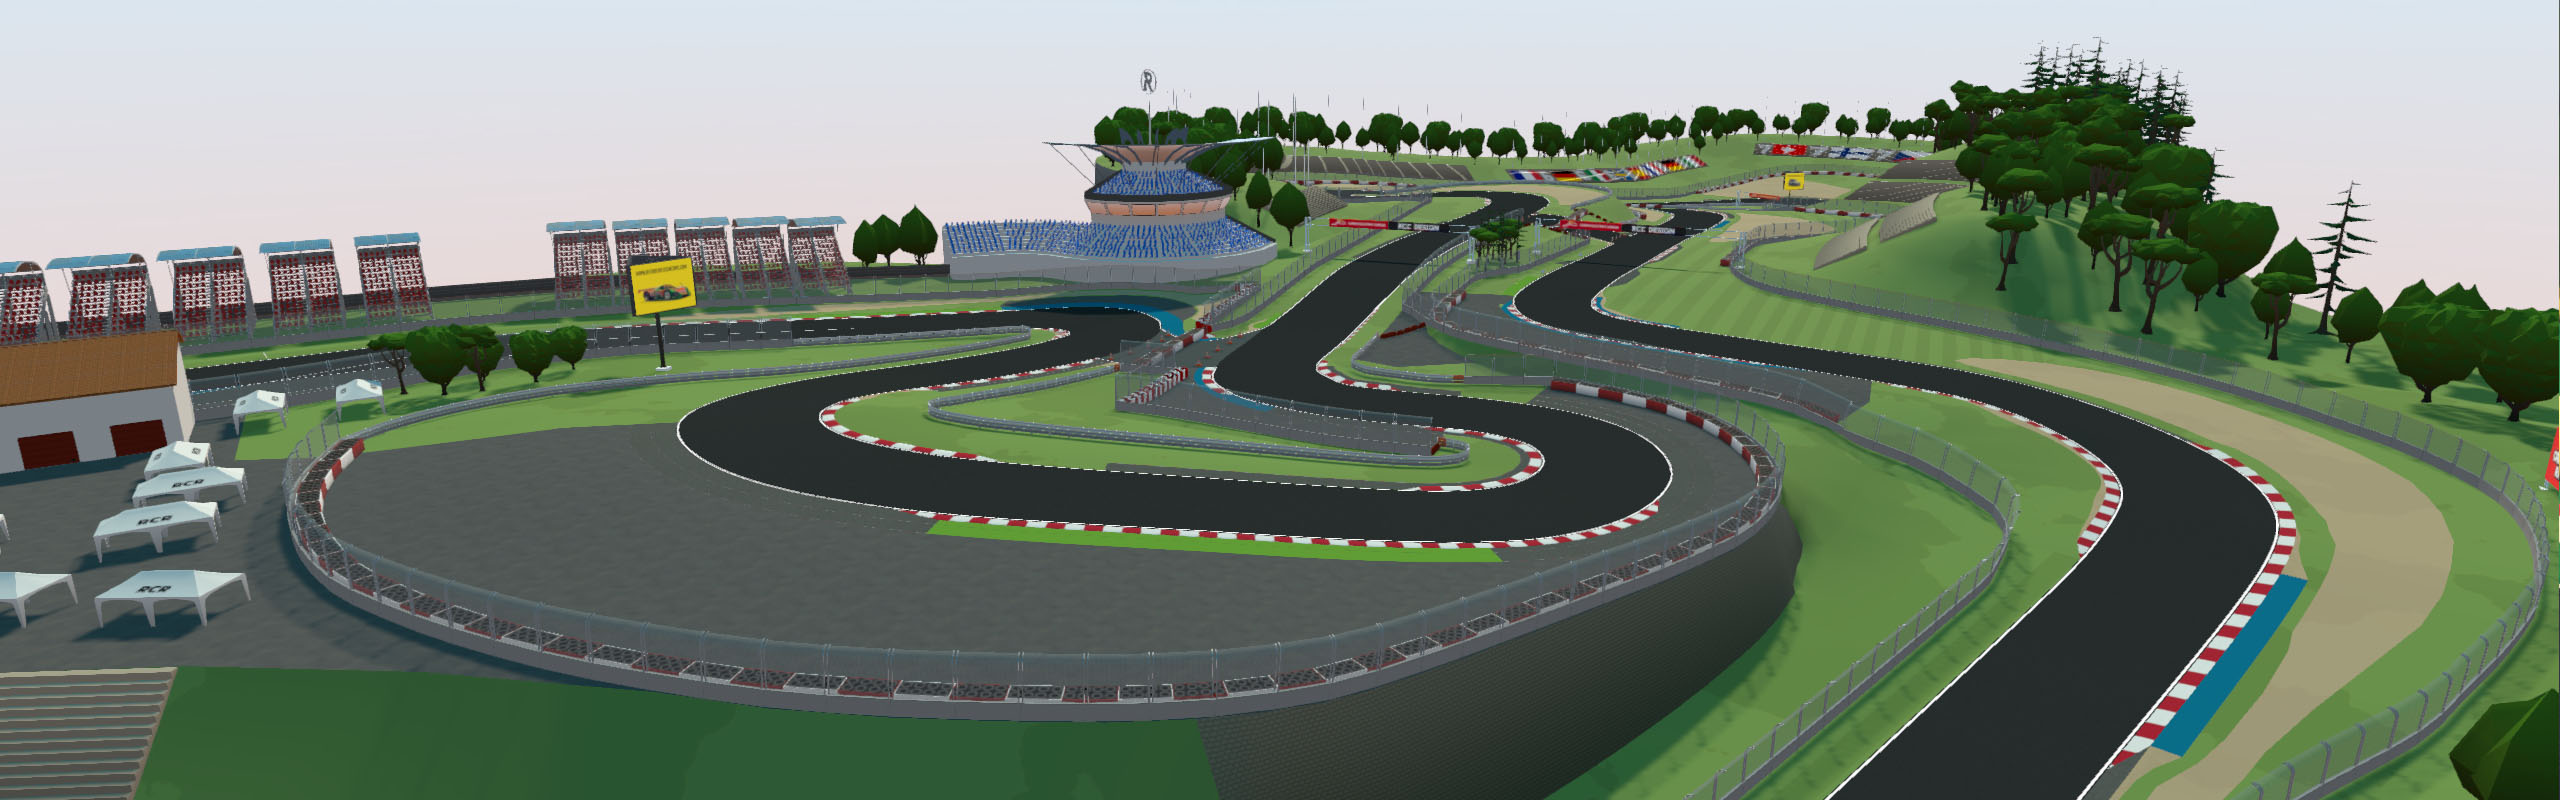 Nurburgring cartoon style model